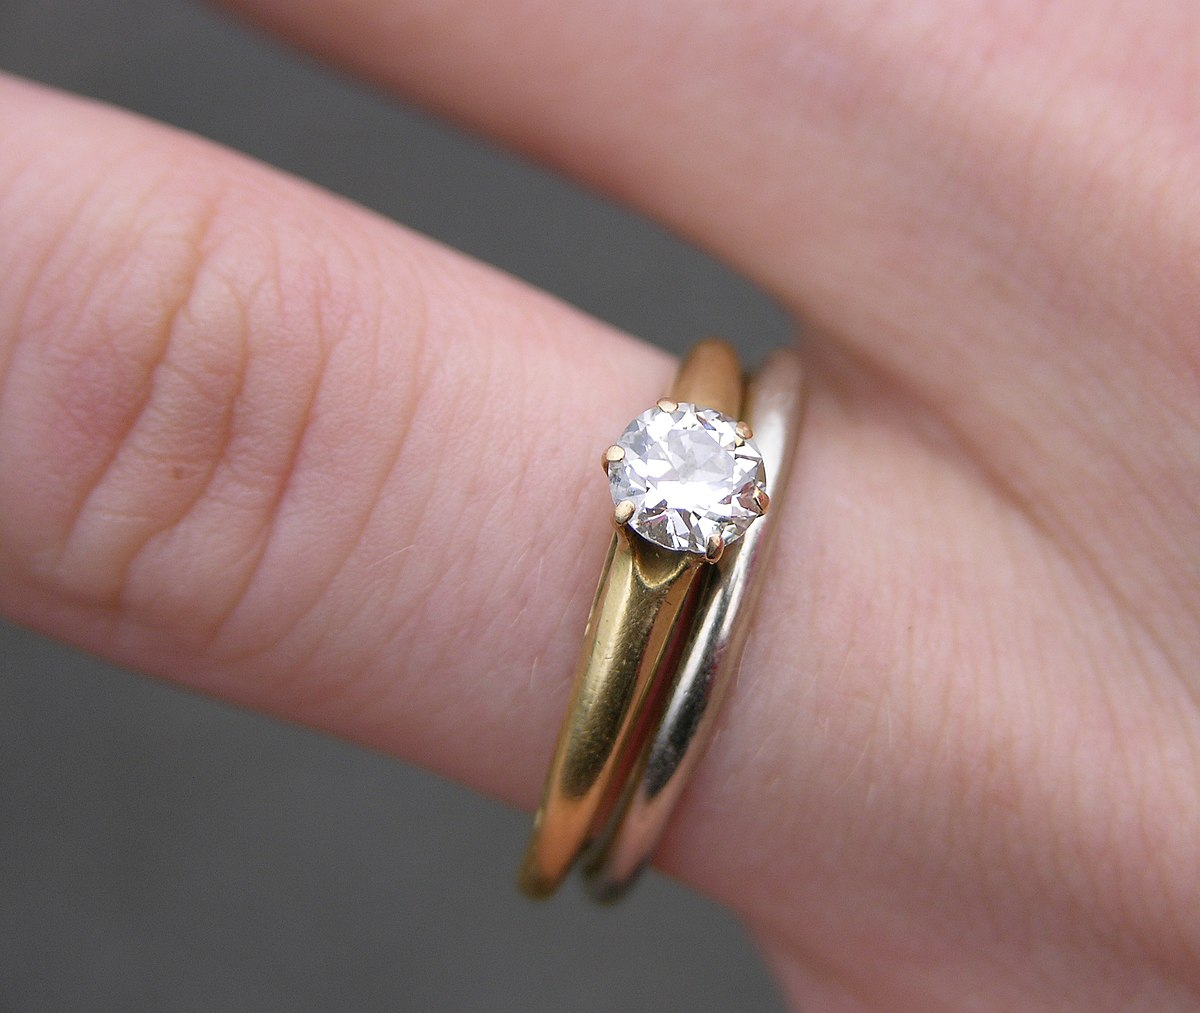 engagement ring wikipedia - Wedding Ring Vs Engagement Ring